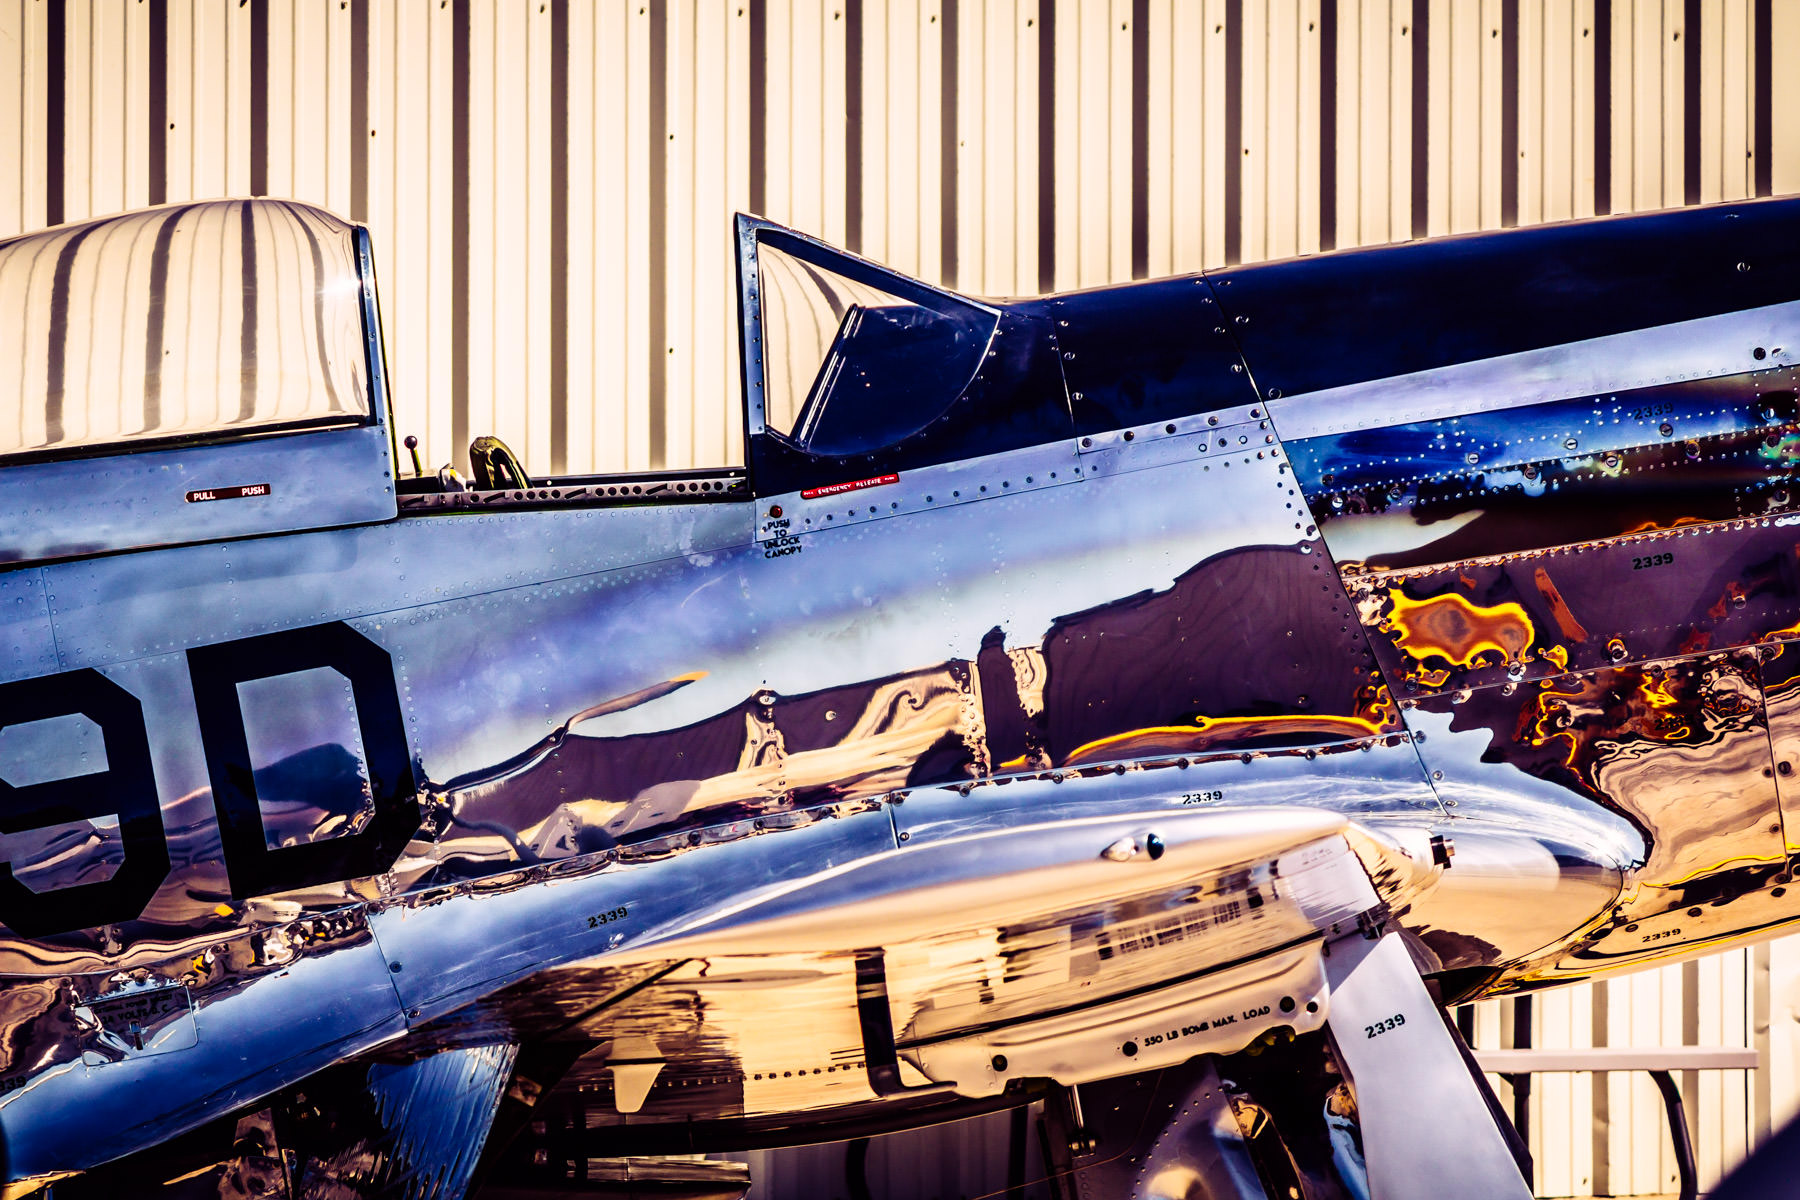 A classic airplane reflects its surroundings in its chrome skin at the Cavanaugh Flight Museum, Addison, Texas.